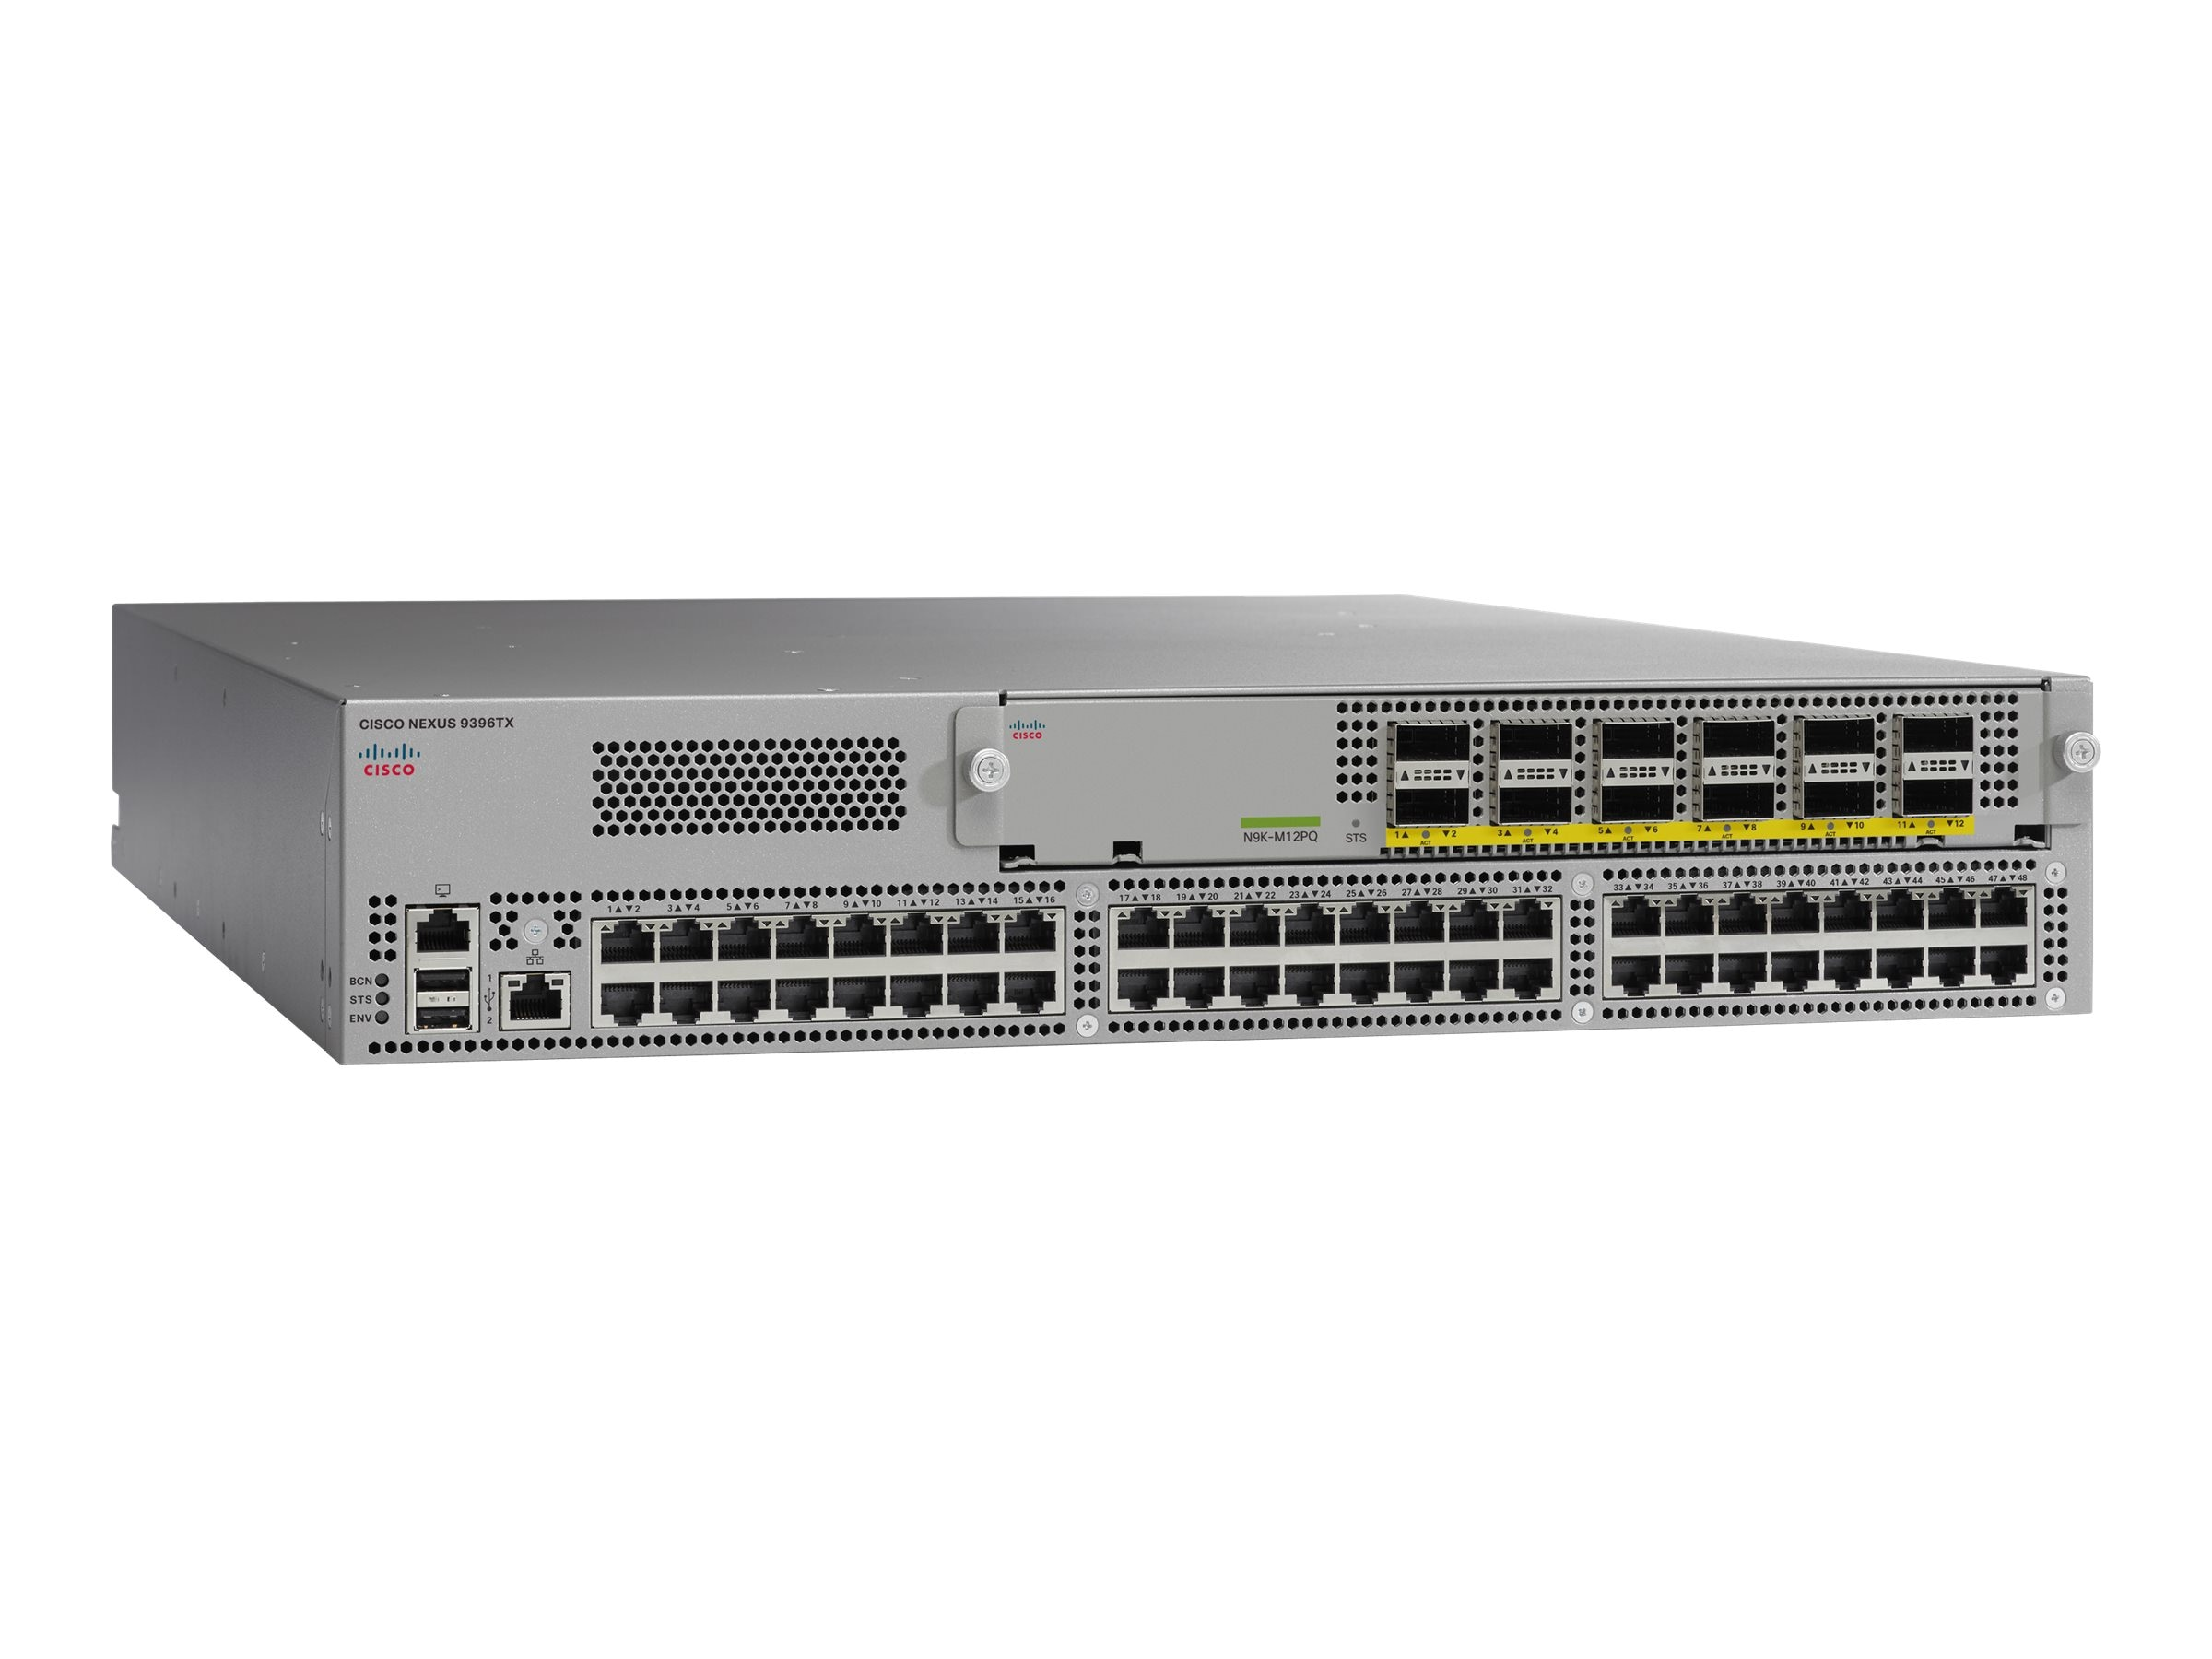 Cisco N9K-C9396TX Image 1